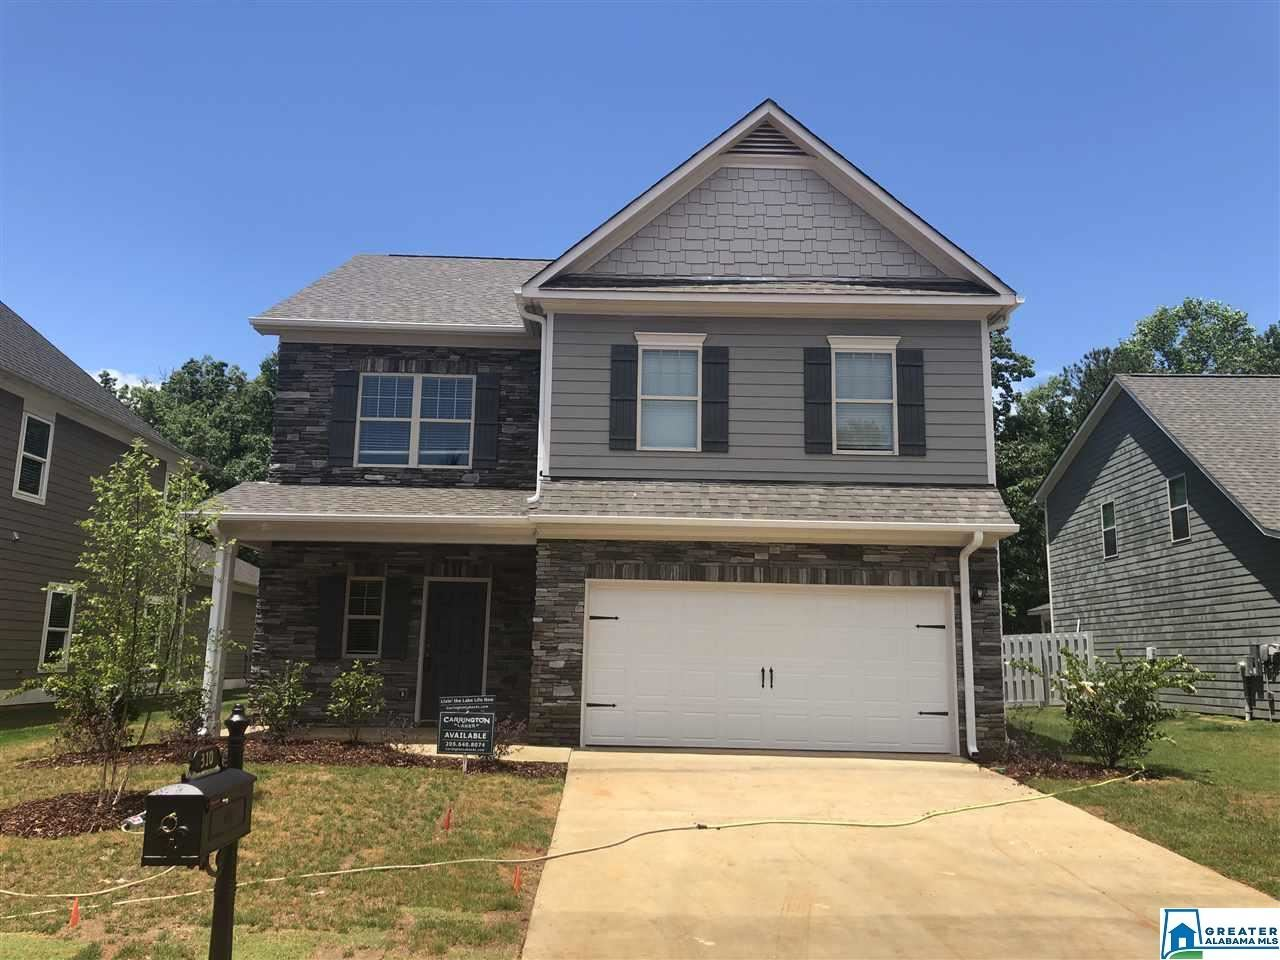 385 LAKERIDGE DR, Trussville, AL 35173 - #: 888476